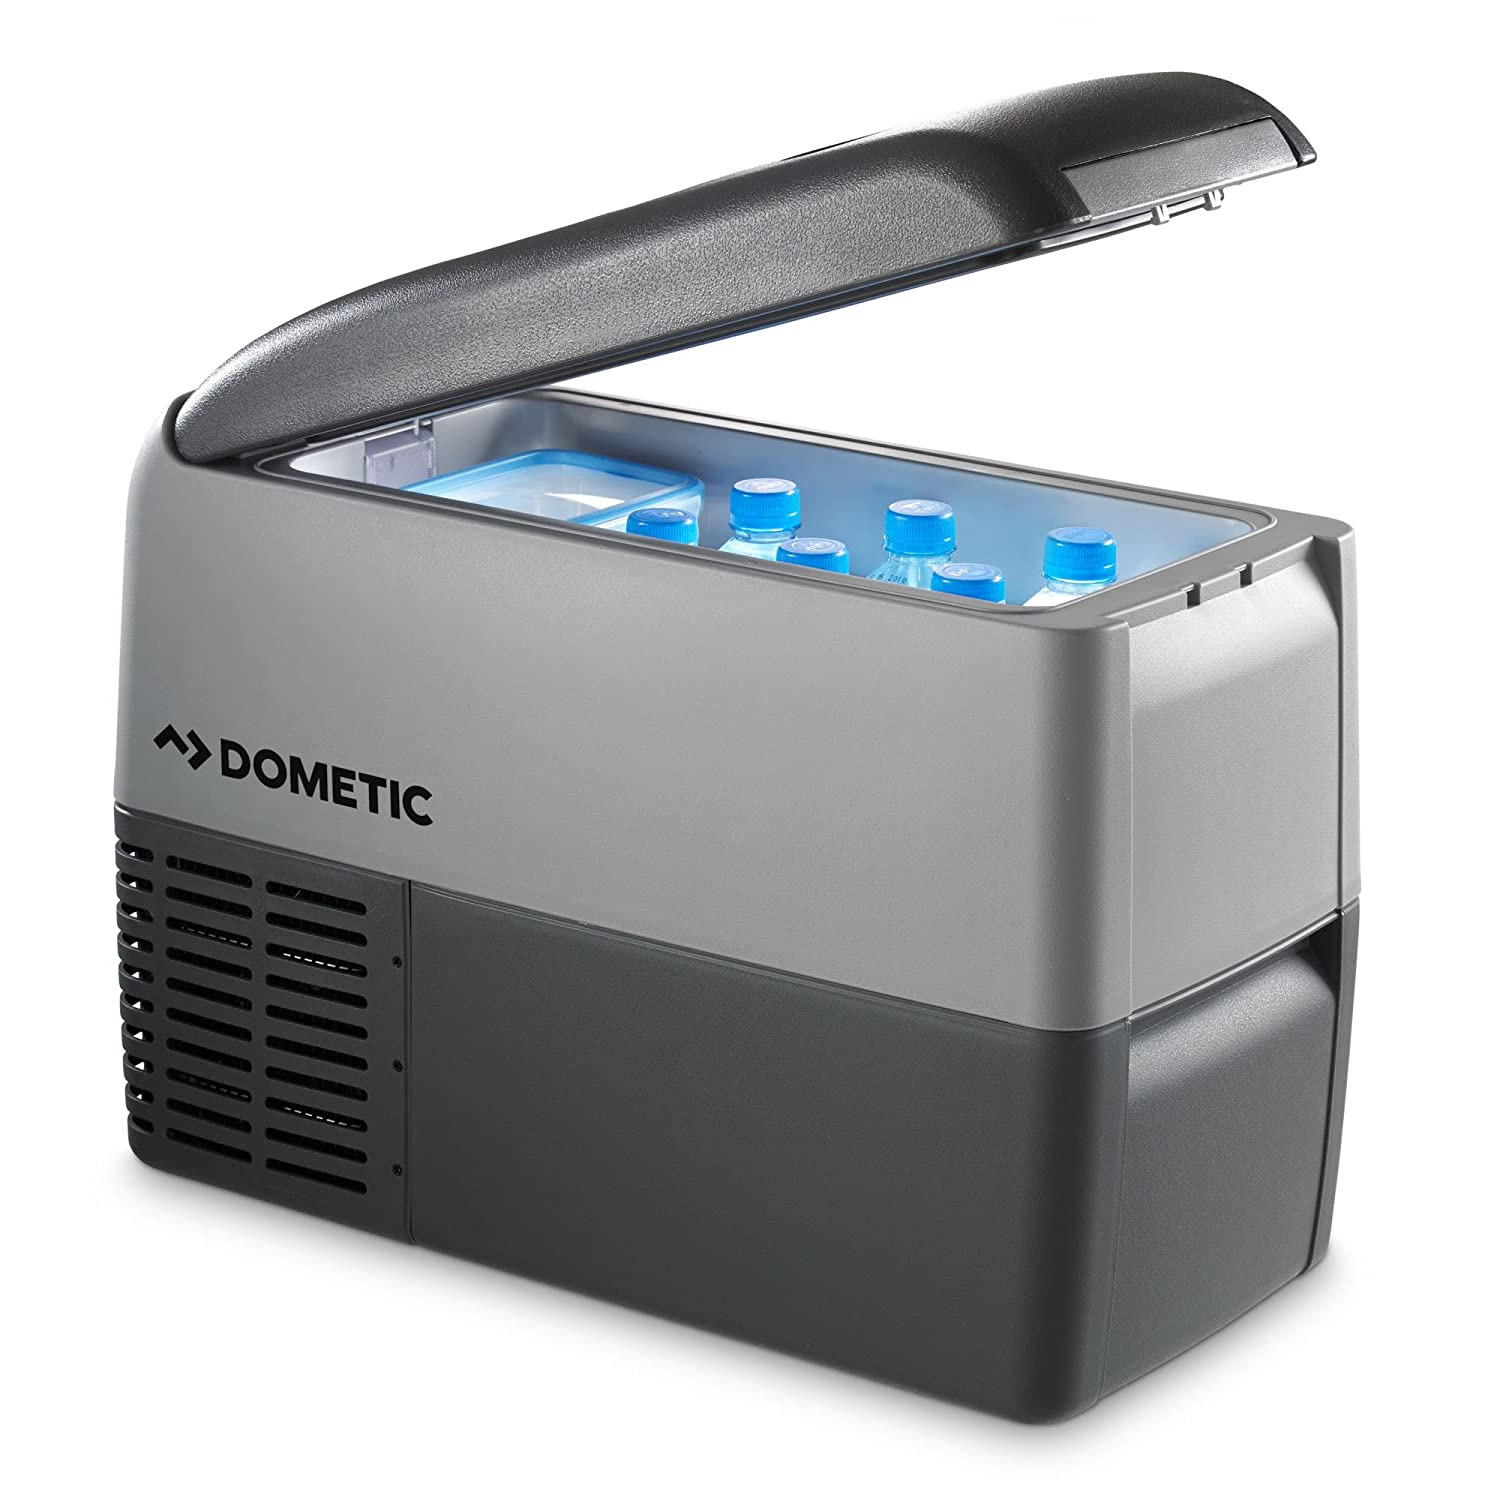 Dometic COOLFREEZE CDF 26 Kompressor Kühlbox Gefrier Box mit 12